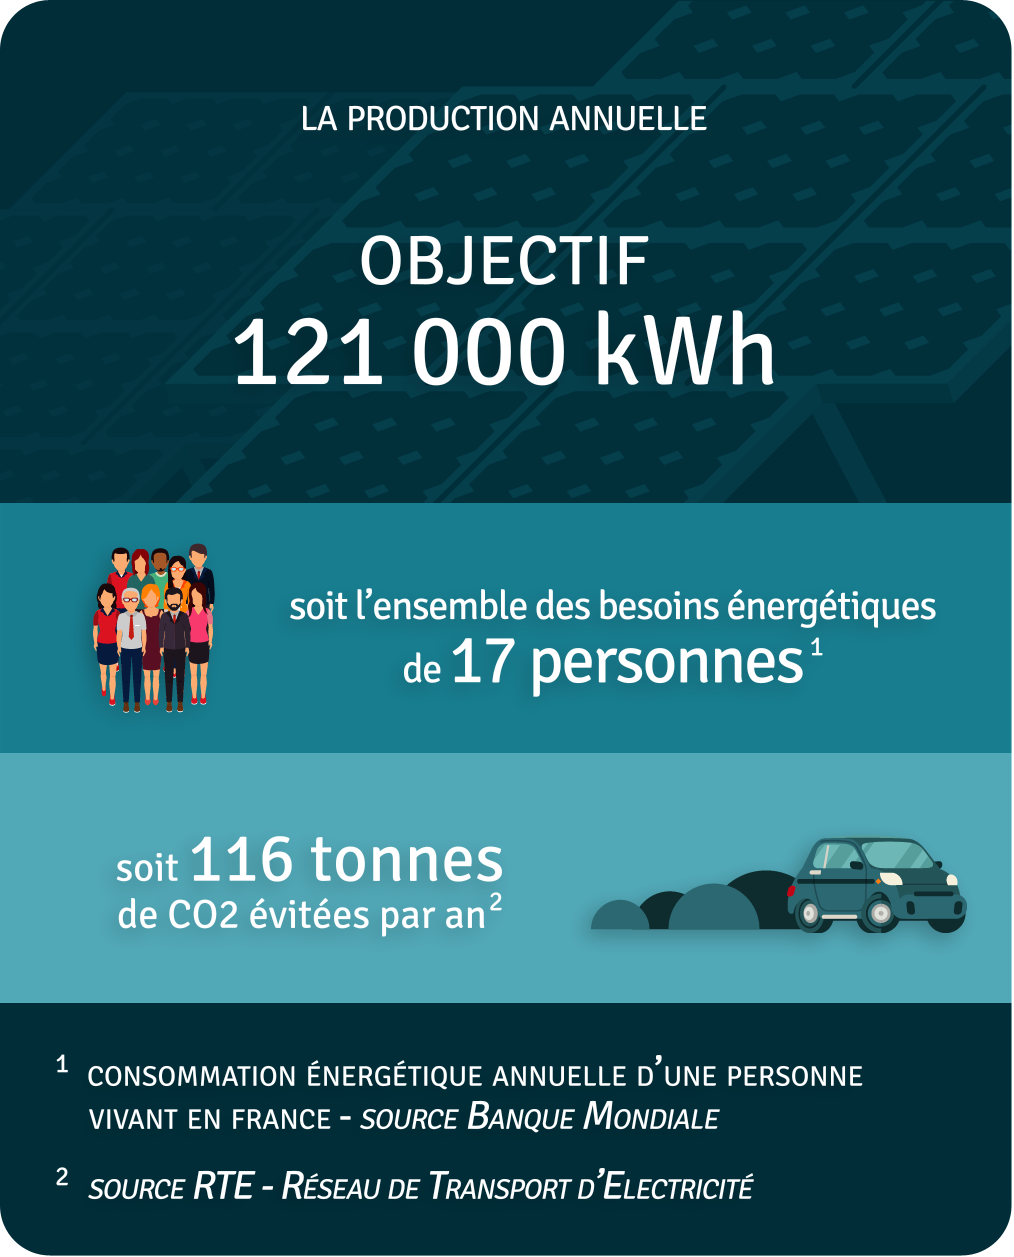 Production annuelle 121 300 kWh